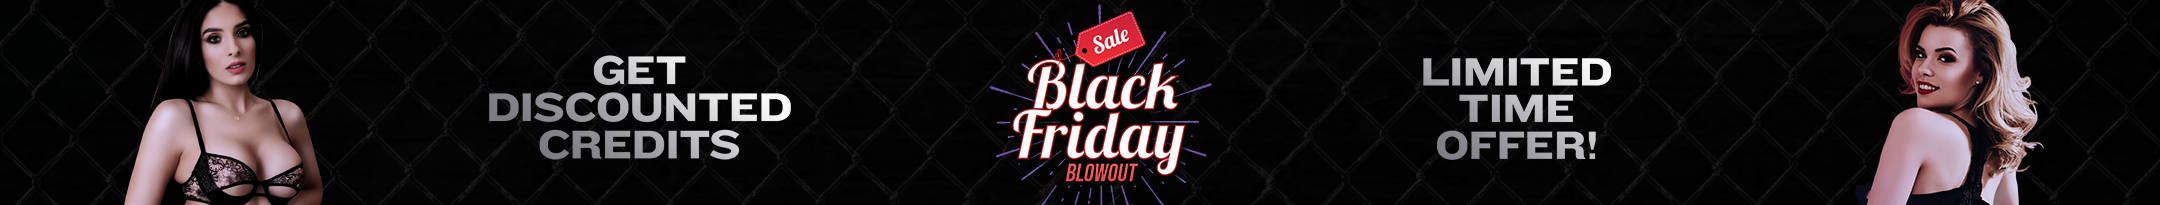 Black Friday Weekend Promo Contest Day 1 Promo